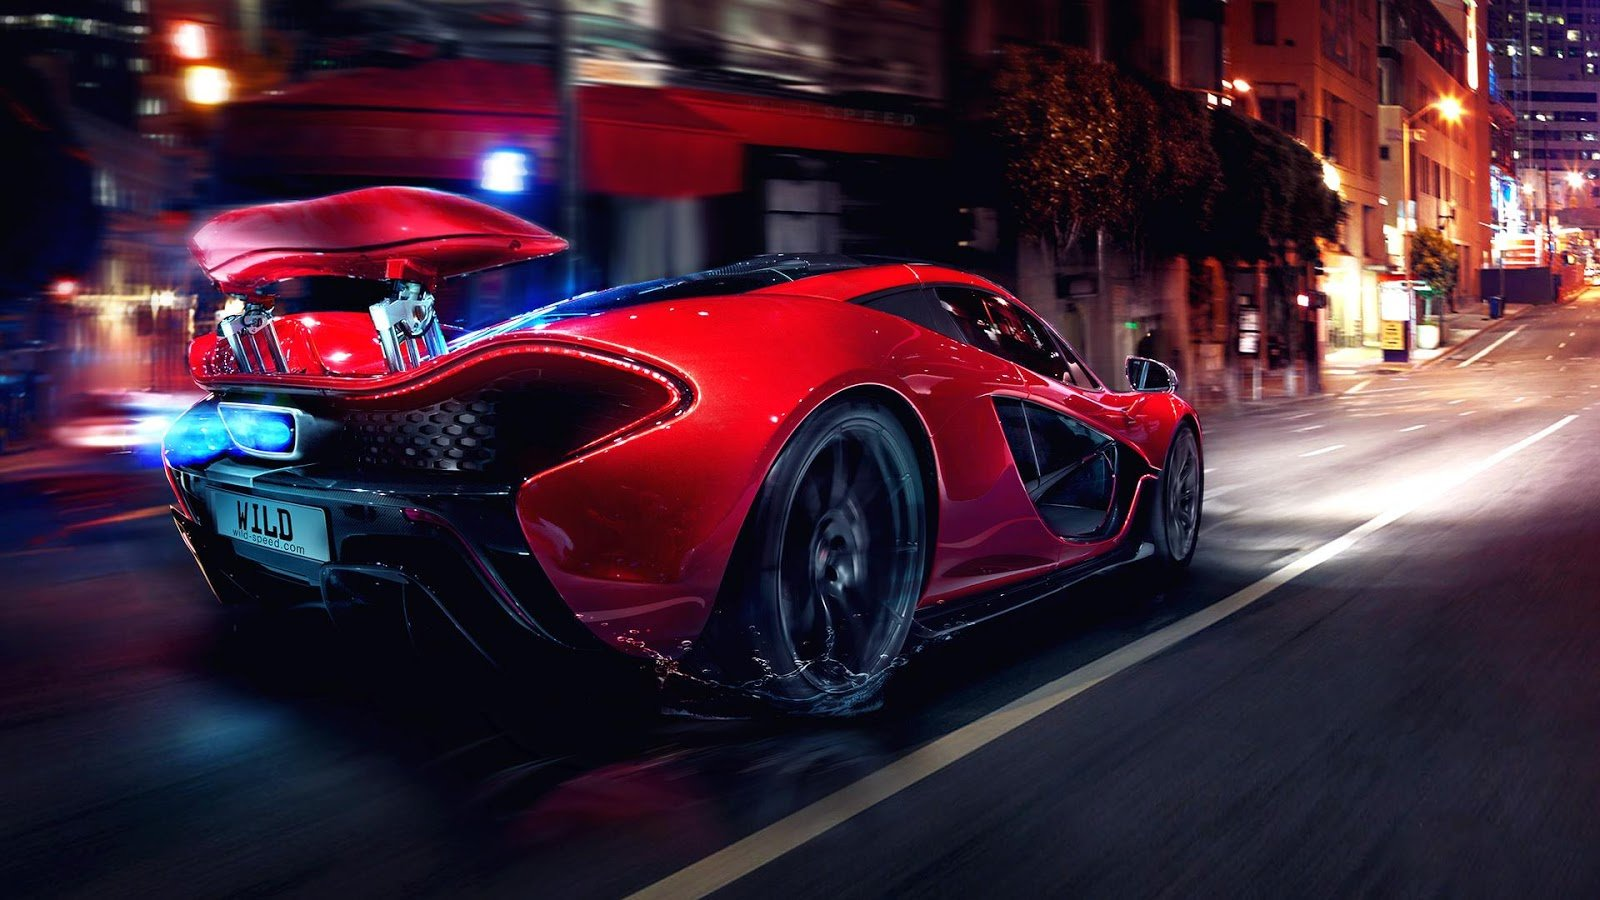 HD Car Wallpapers For Mobile 92 Wallpapers Wallpapers 4k 35 QUotes 1600x900